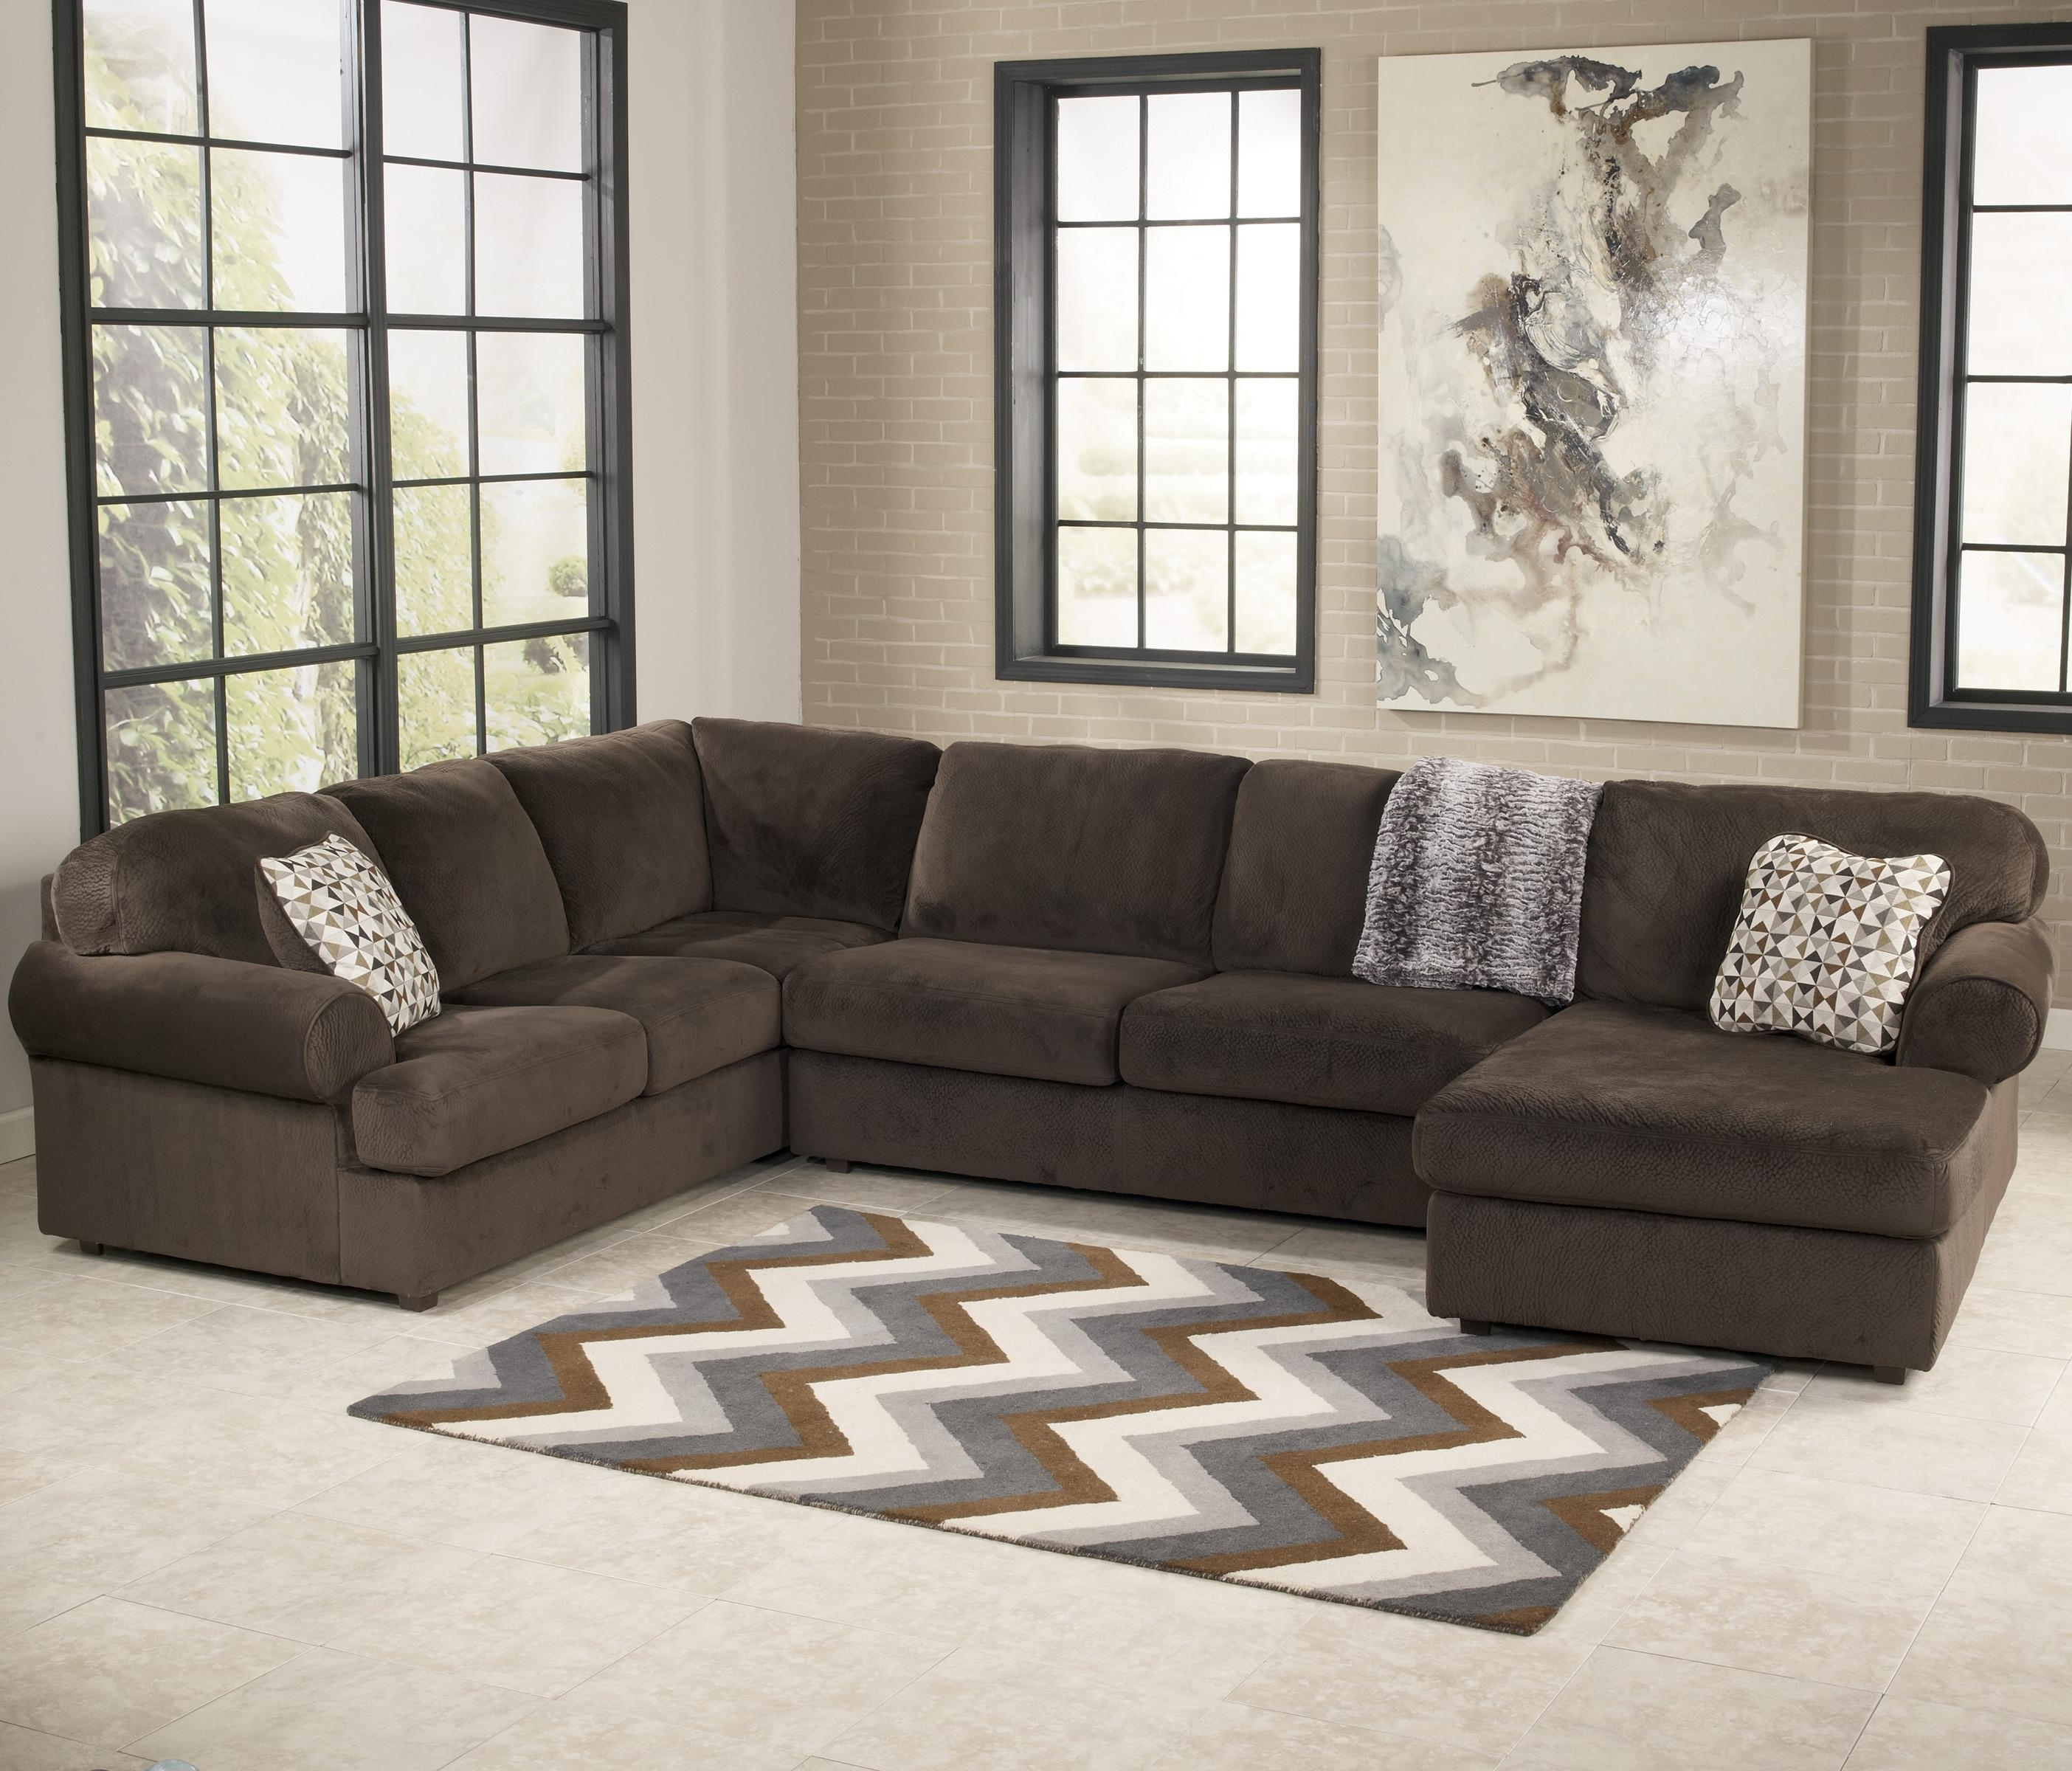 Sectional Sofas At Ashley Within Widely Used Importance Of Chaise Sectional Sofas – Bazar De Coco (View 11 of 20)